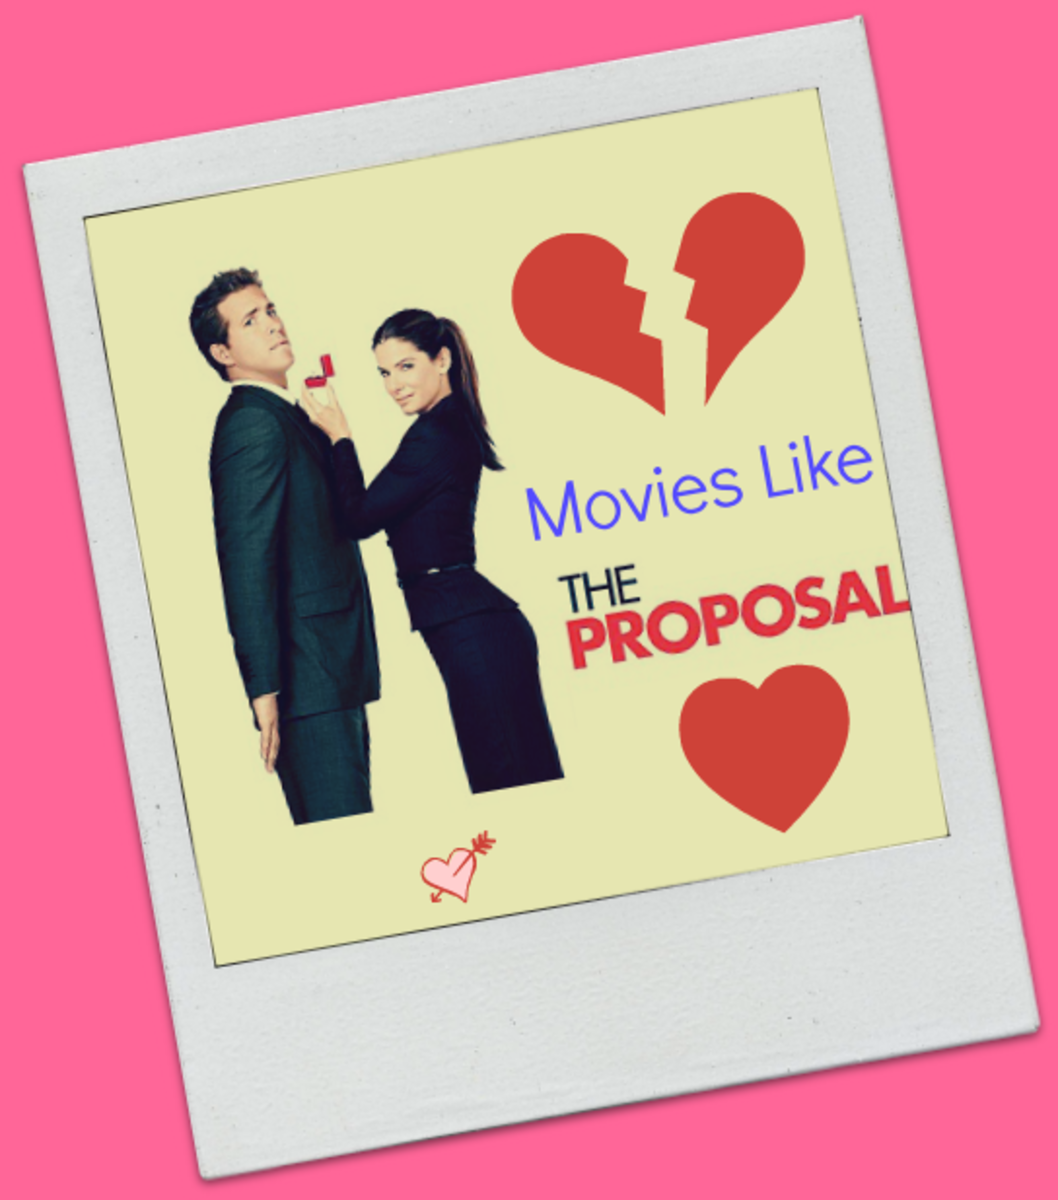 Movies Like The Proposal